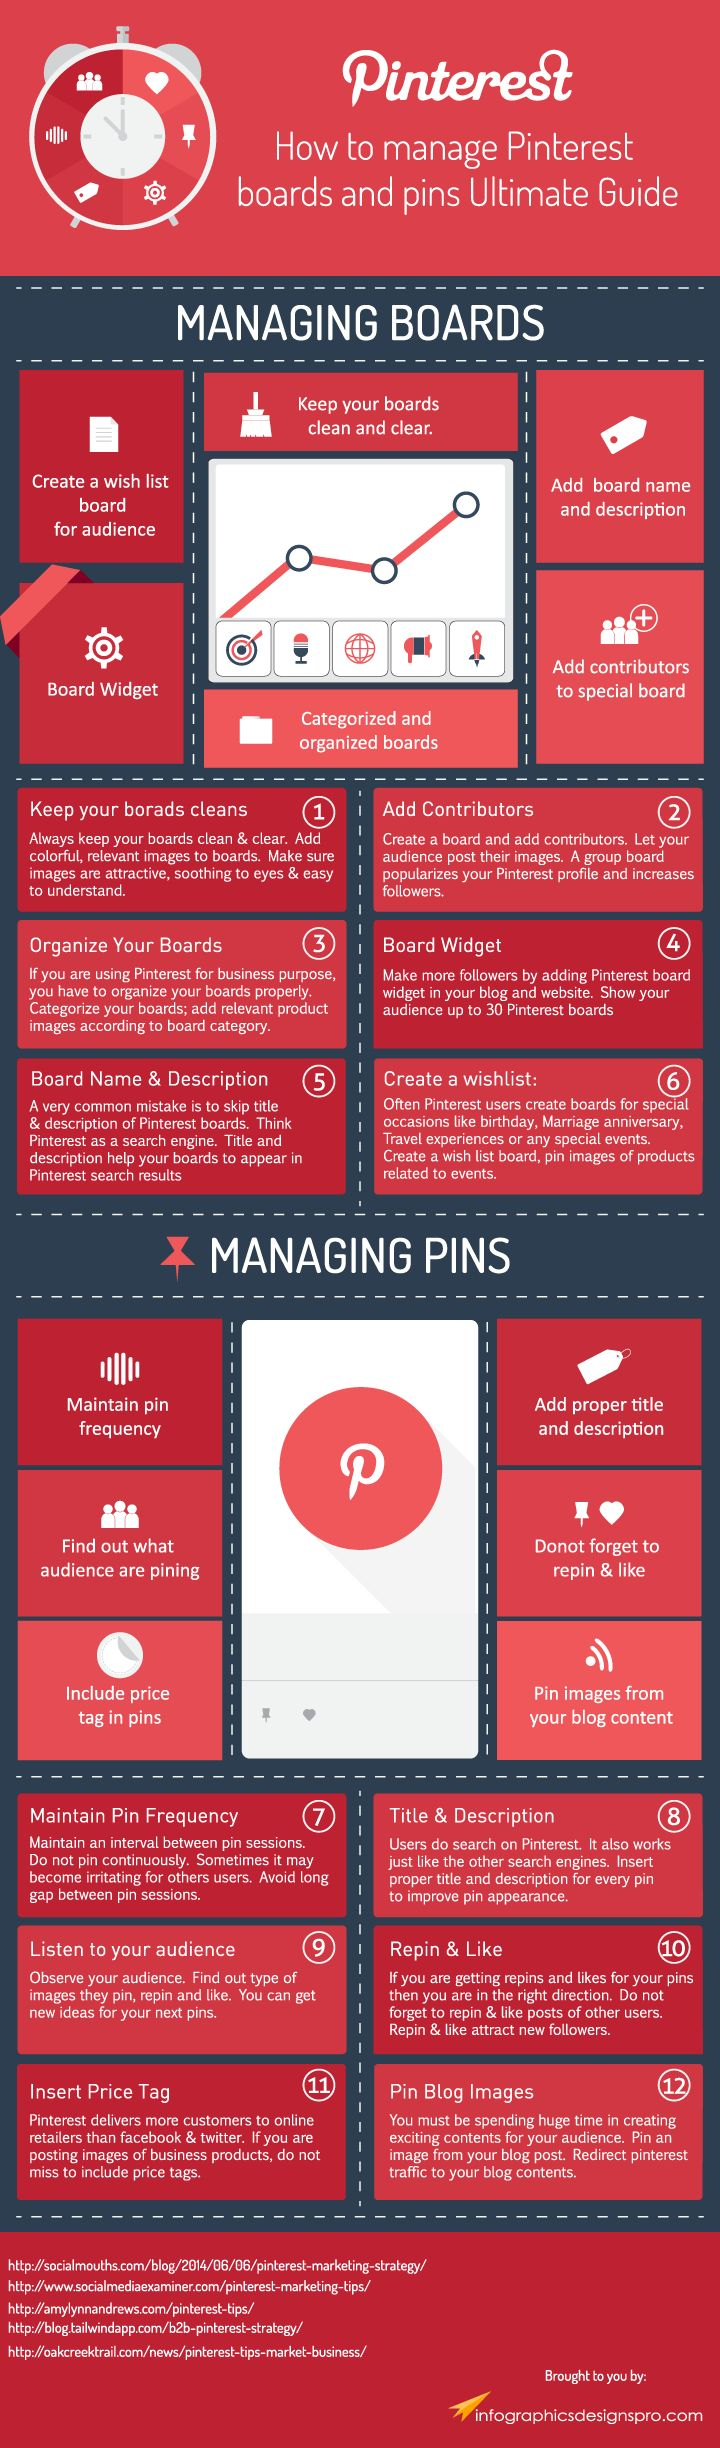 How to manage Pinterest boards and pins Ultimate guide